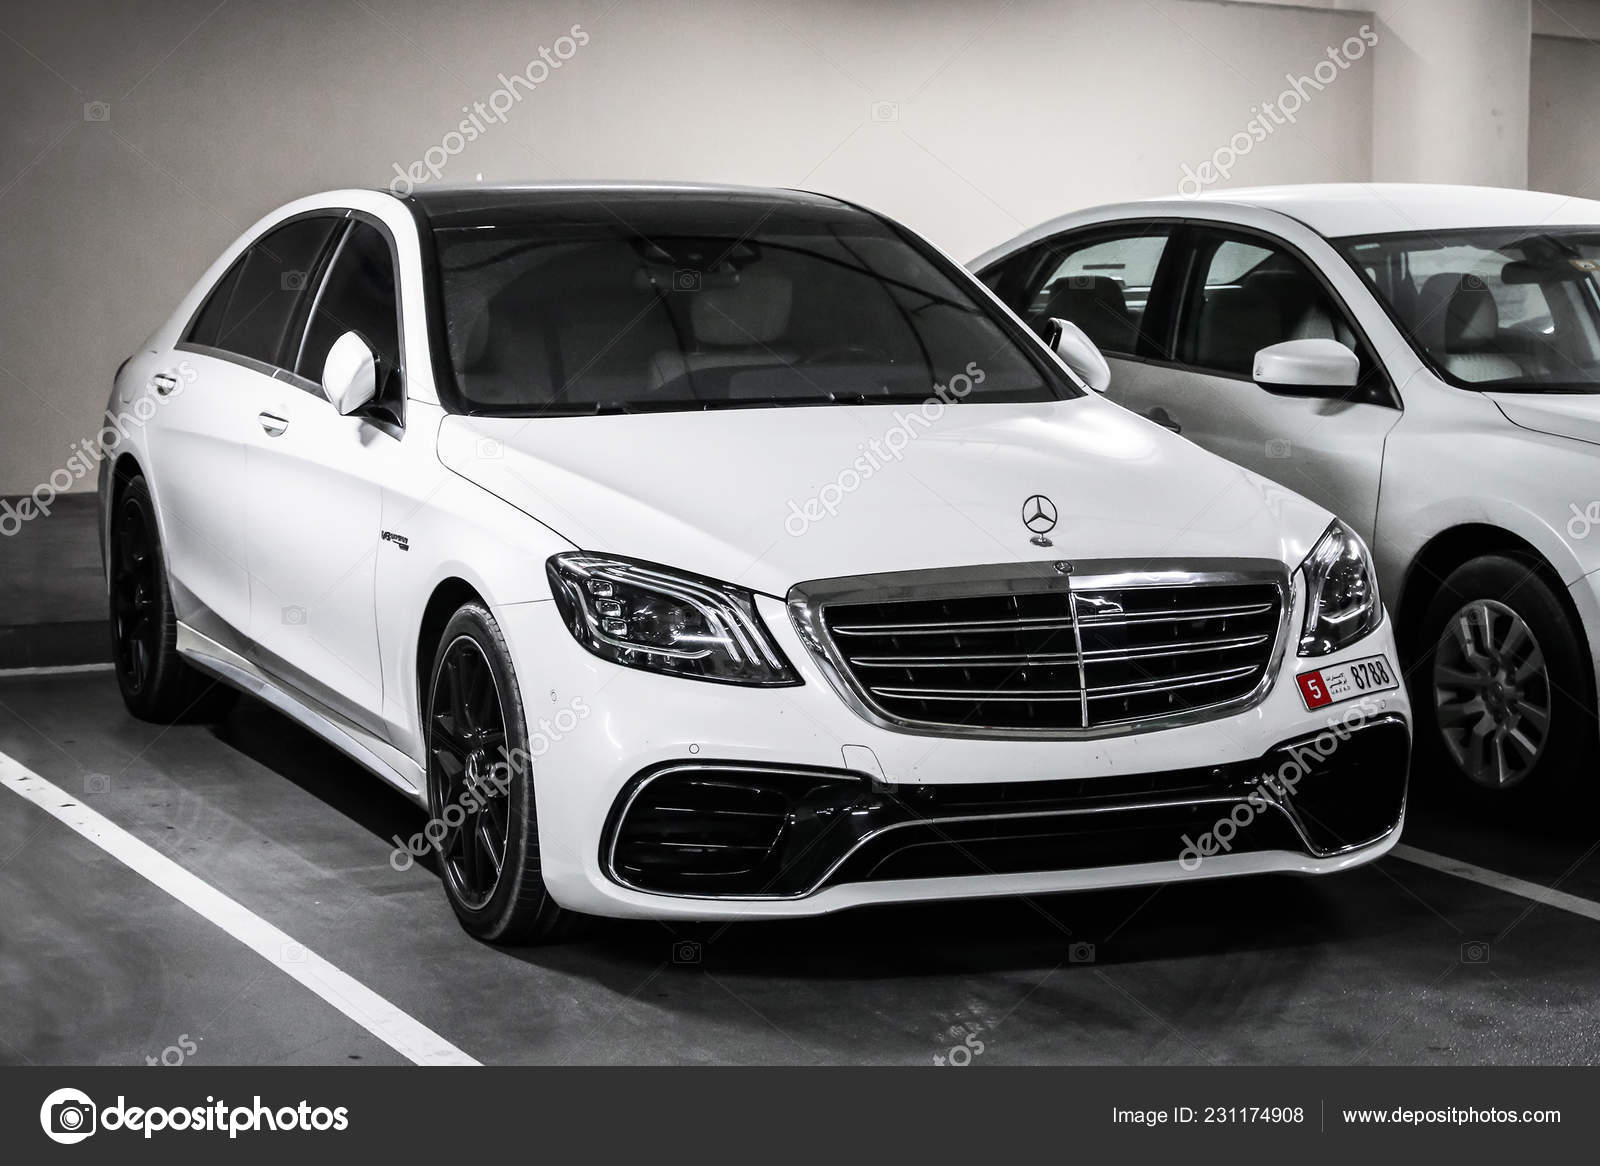 Dubai Uae November 2018 Luxury Motor Car Mercedes Benz W222 Stock Editorial Photo C Artzzz 231174908